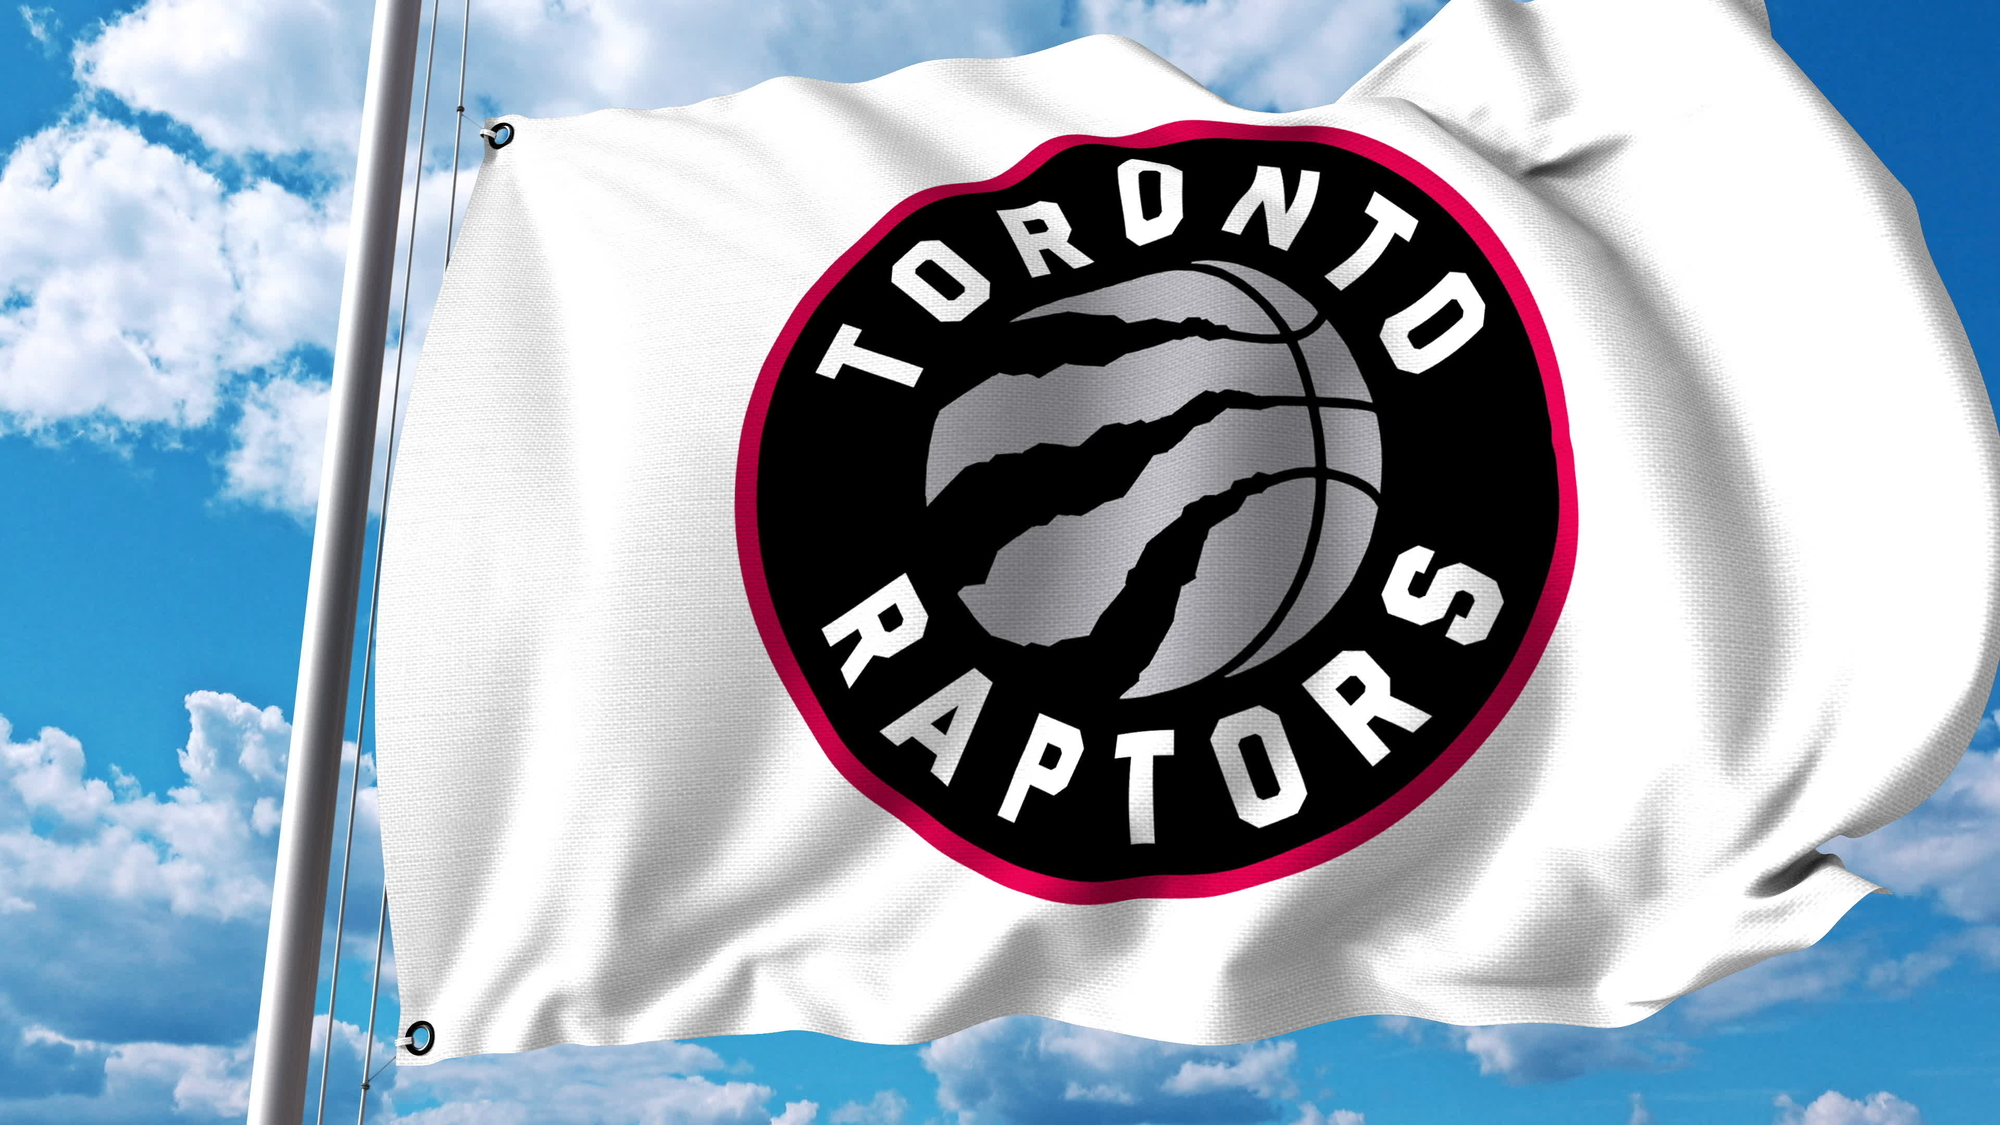 In preparation for Florida move Raptors replace logo with image of shirtless man shooting fireworks at an Alligator